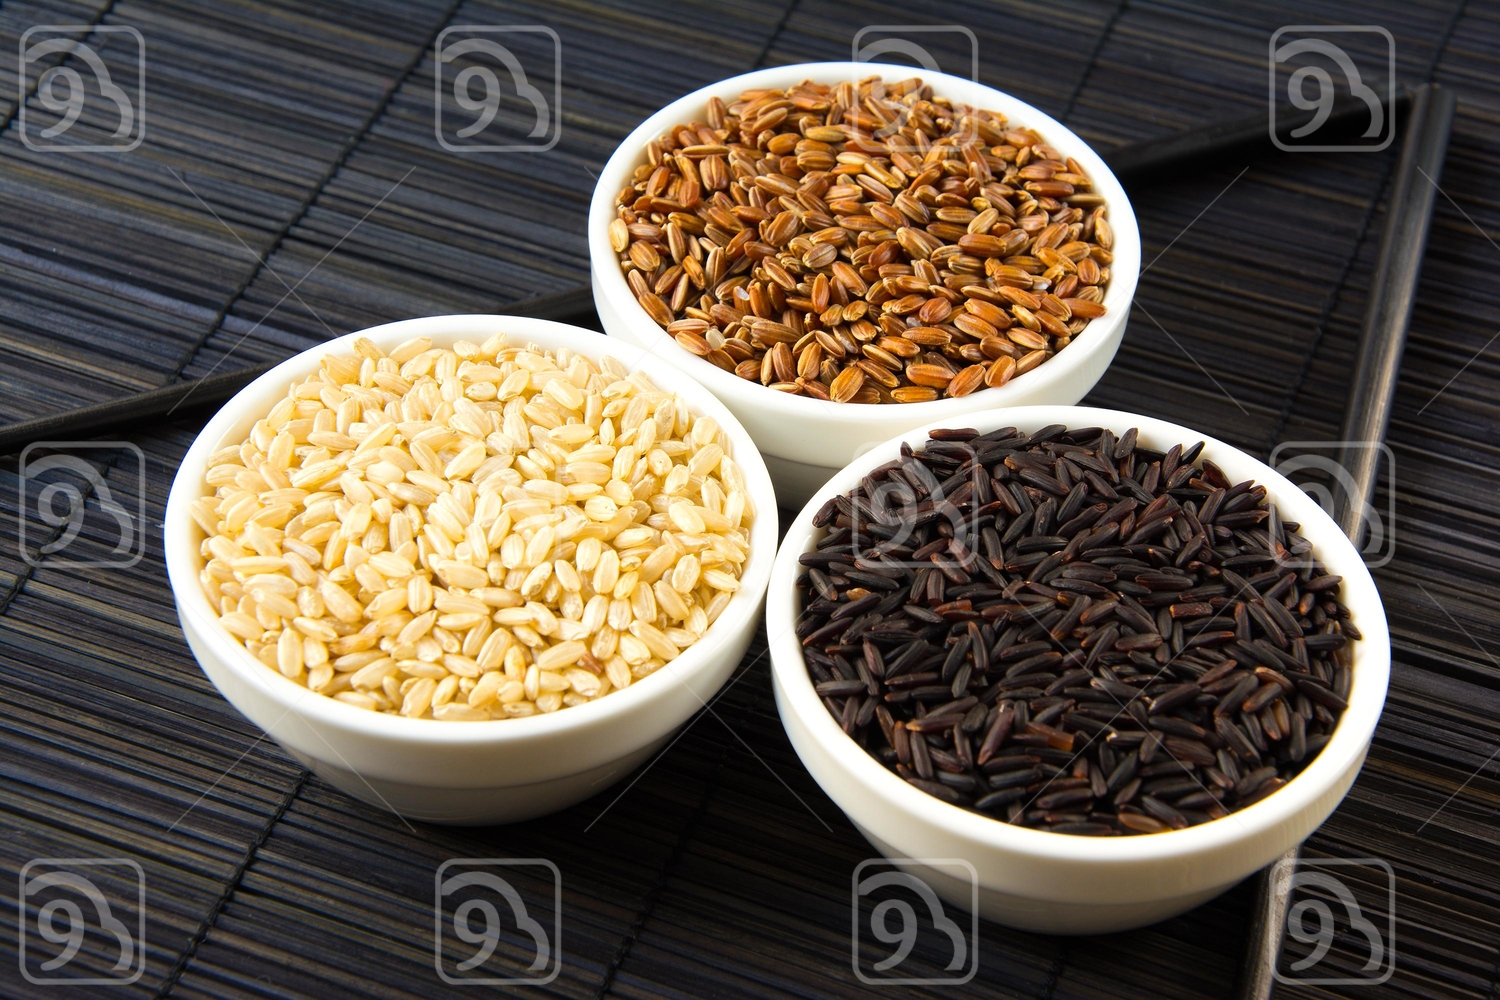 black, red and white unpolished rice on a straw mat